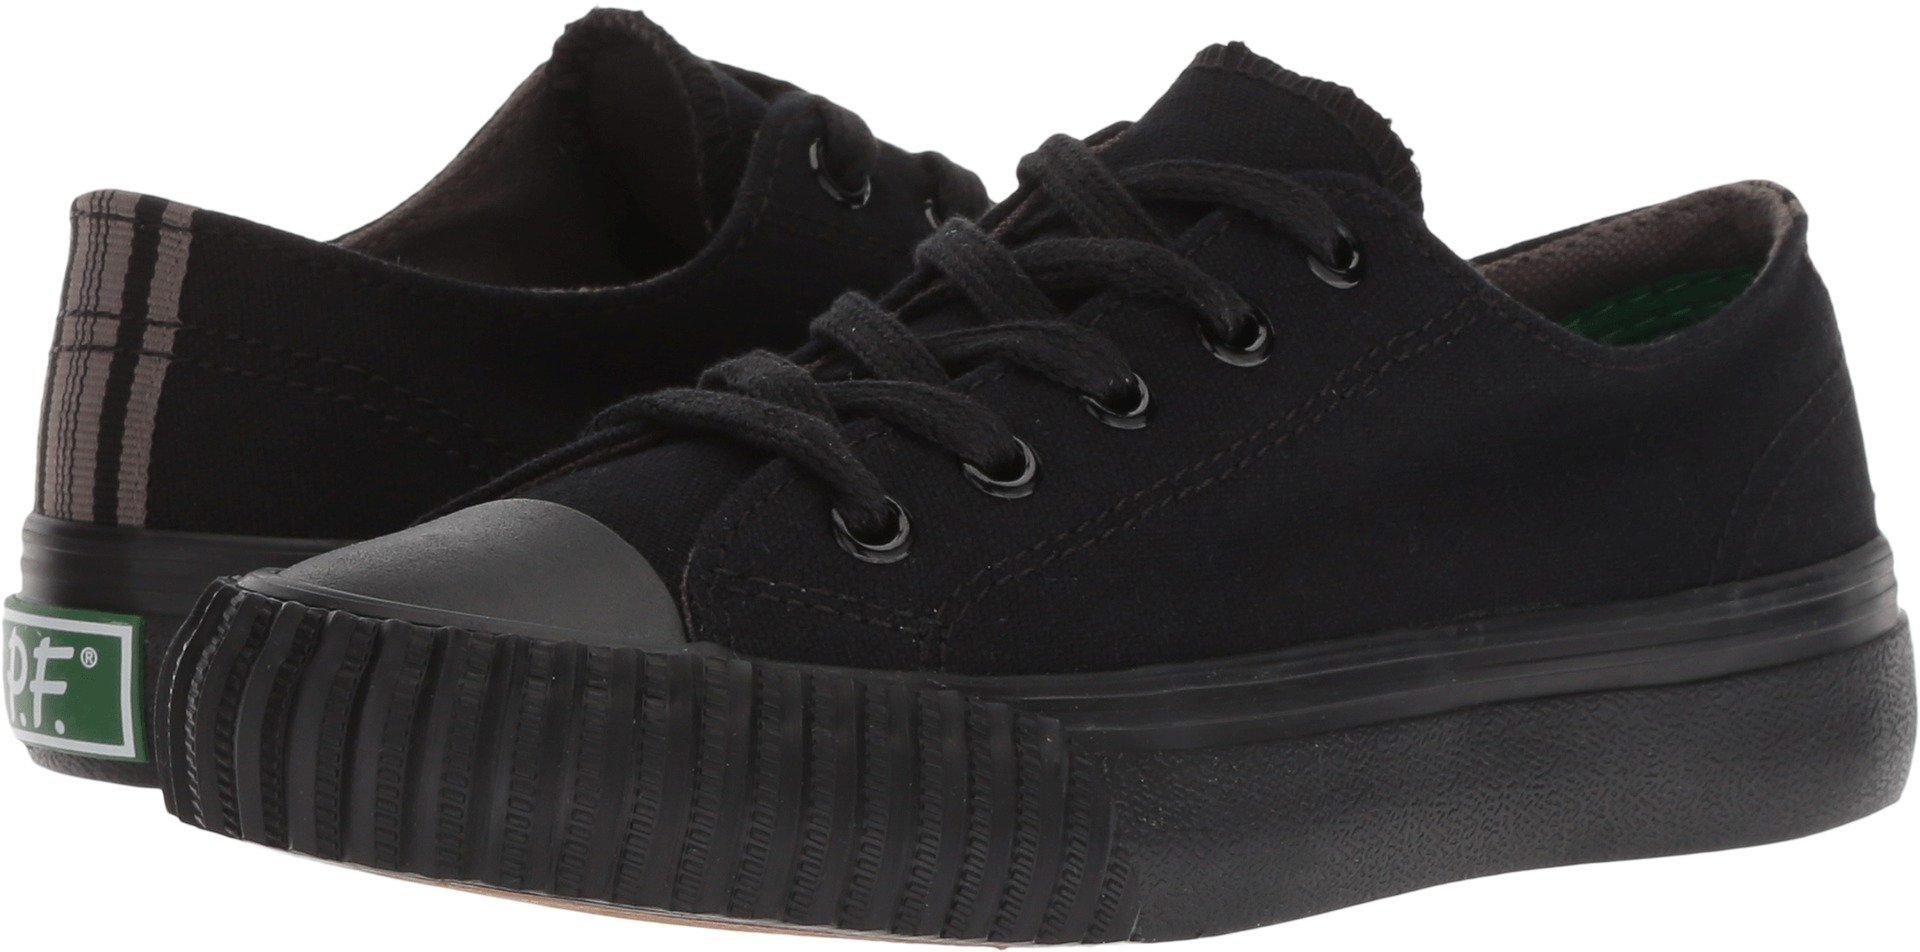 PF Flyers Boys' KC2002SL, Black, 13 Medium US Little Kid